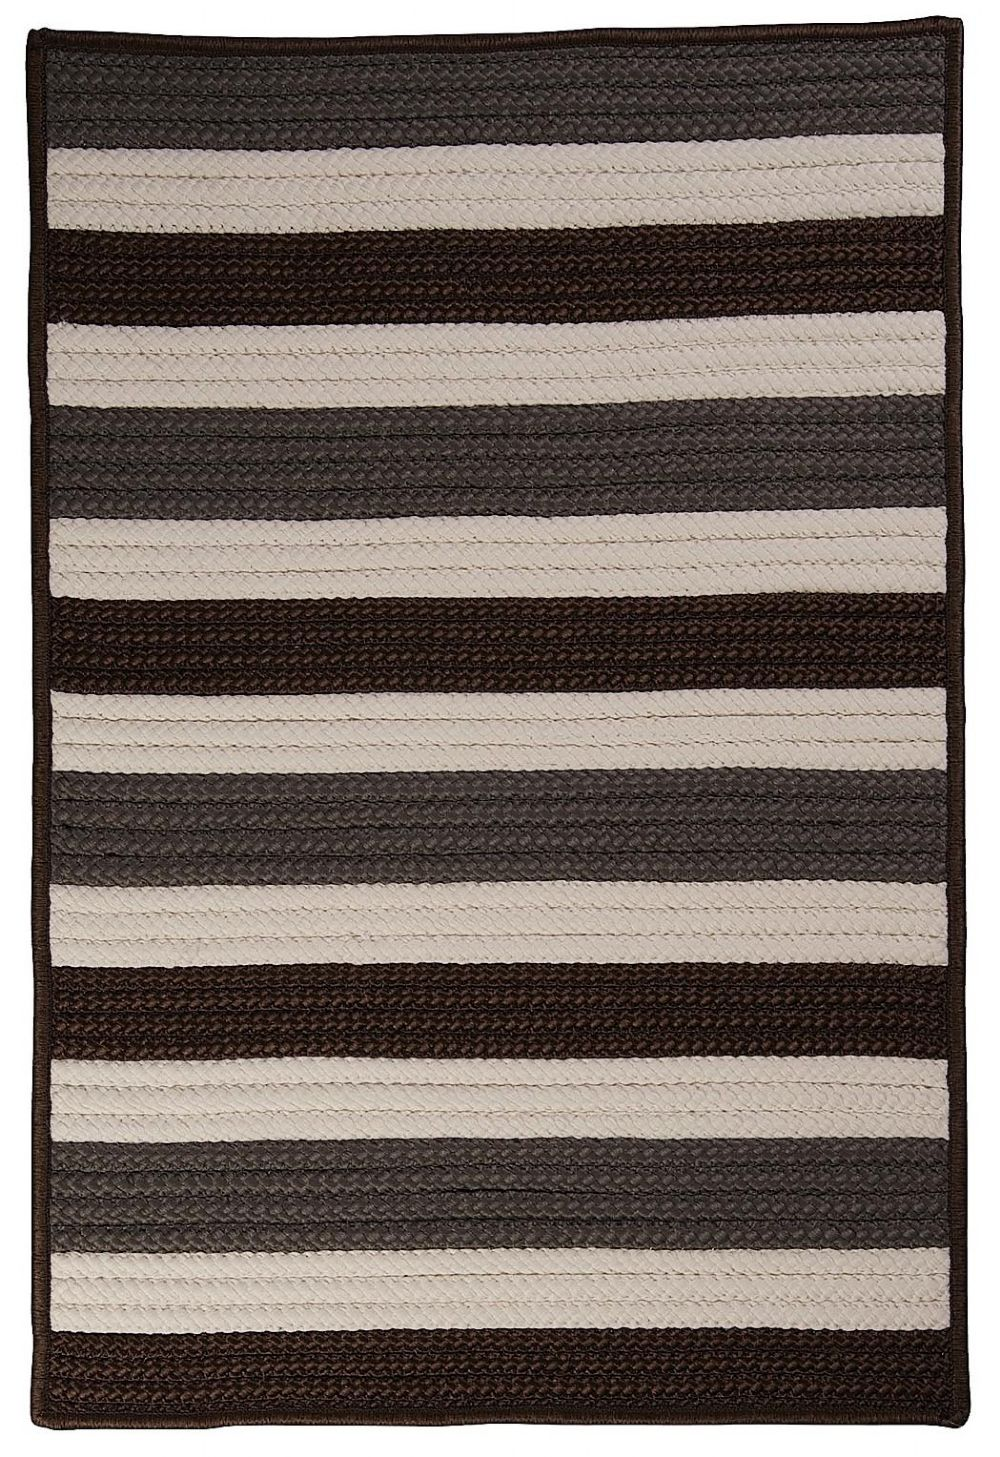 colonial mills portico braided area rug collection